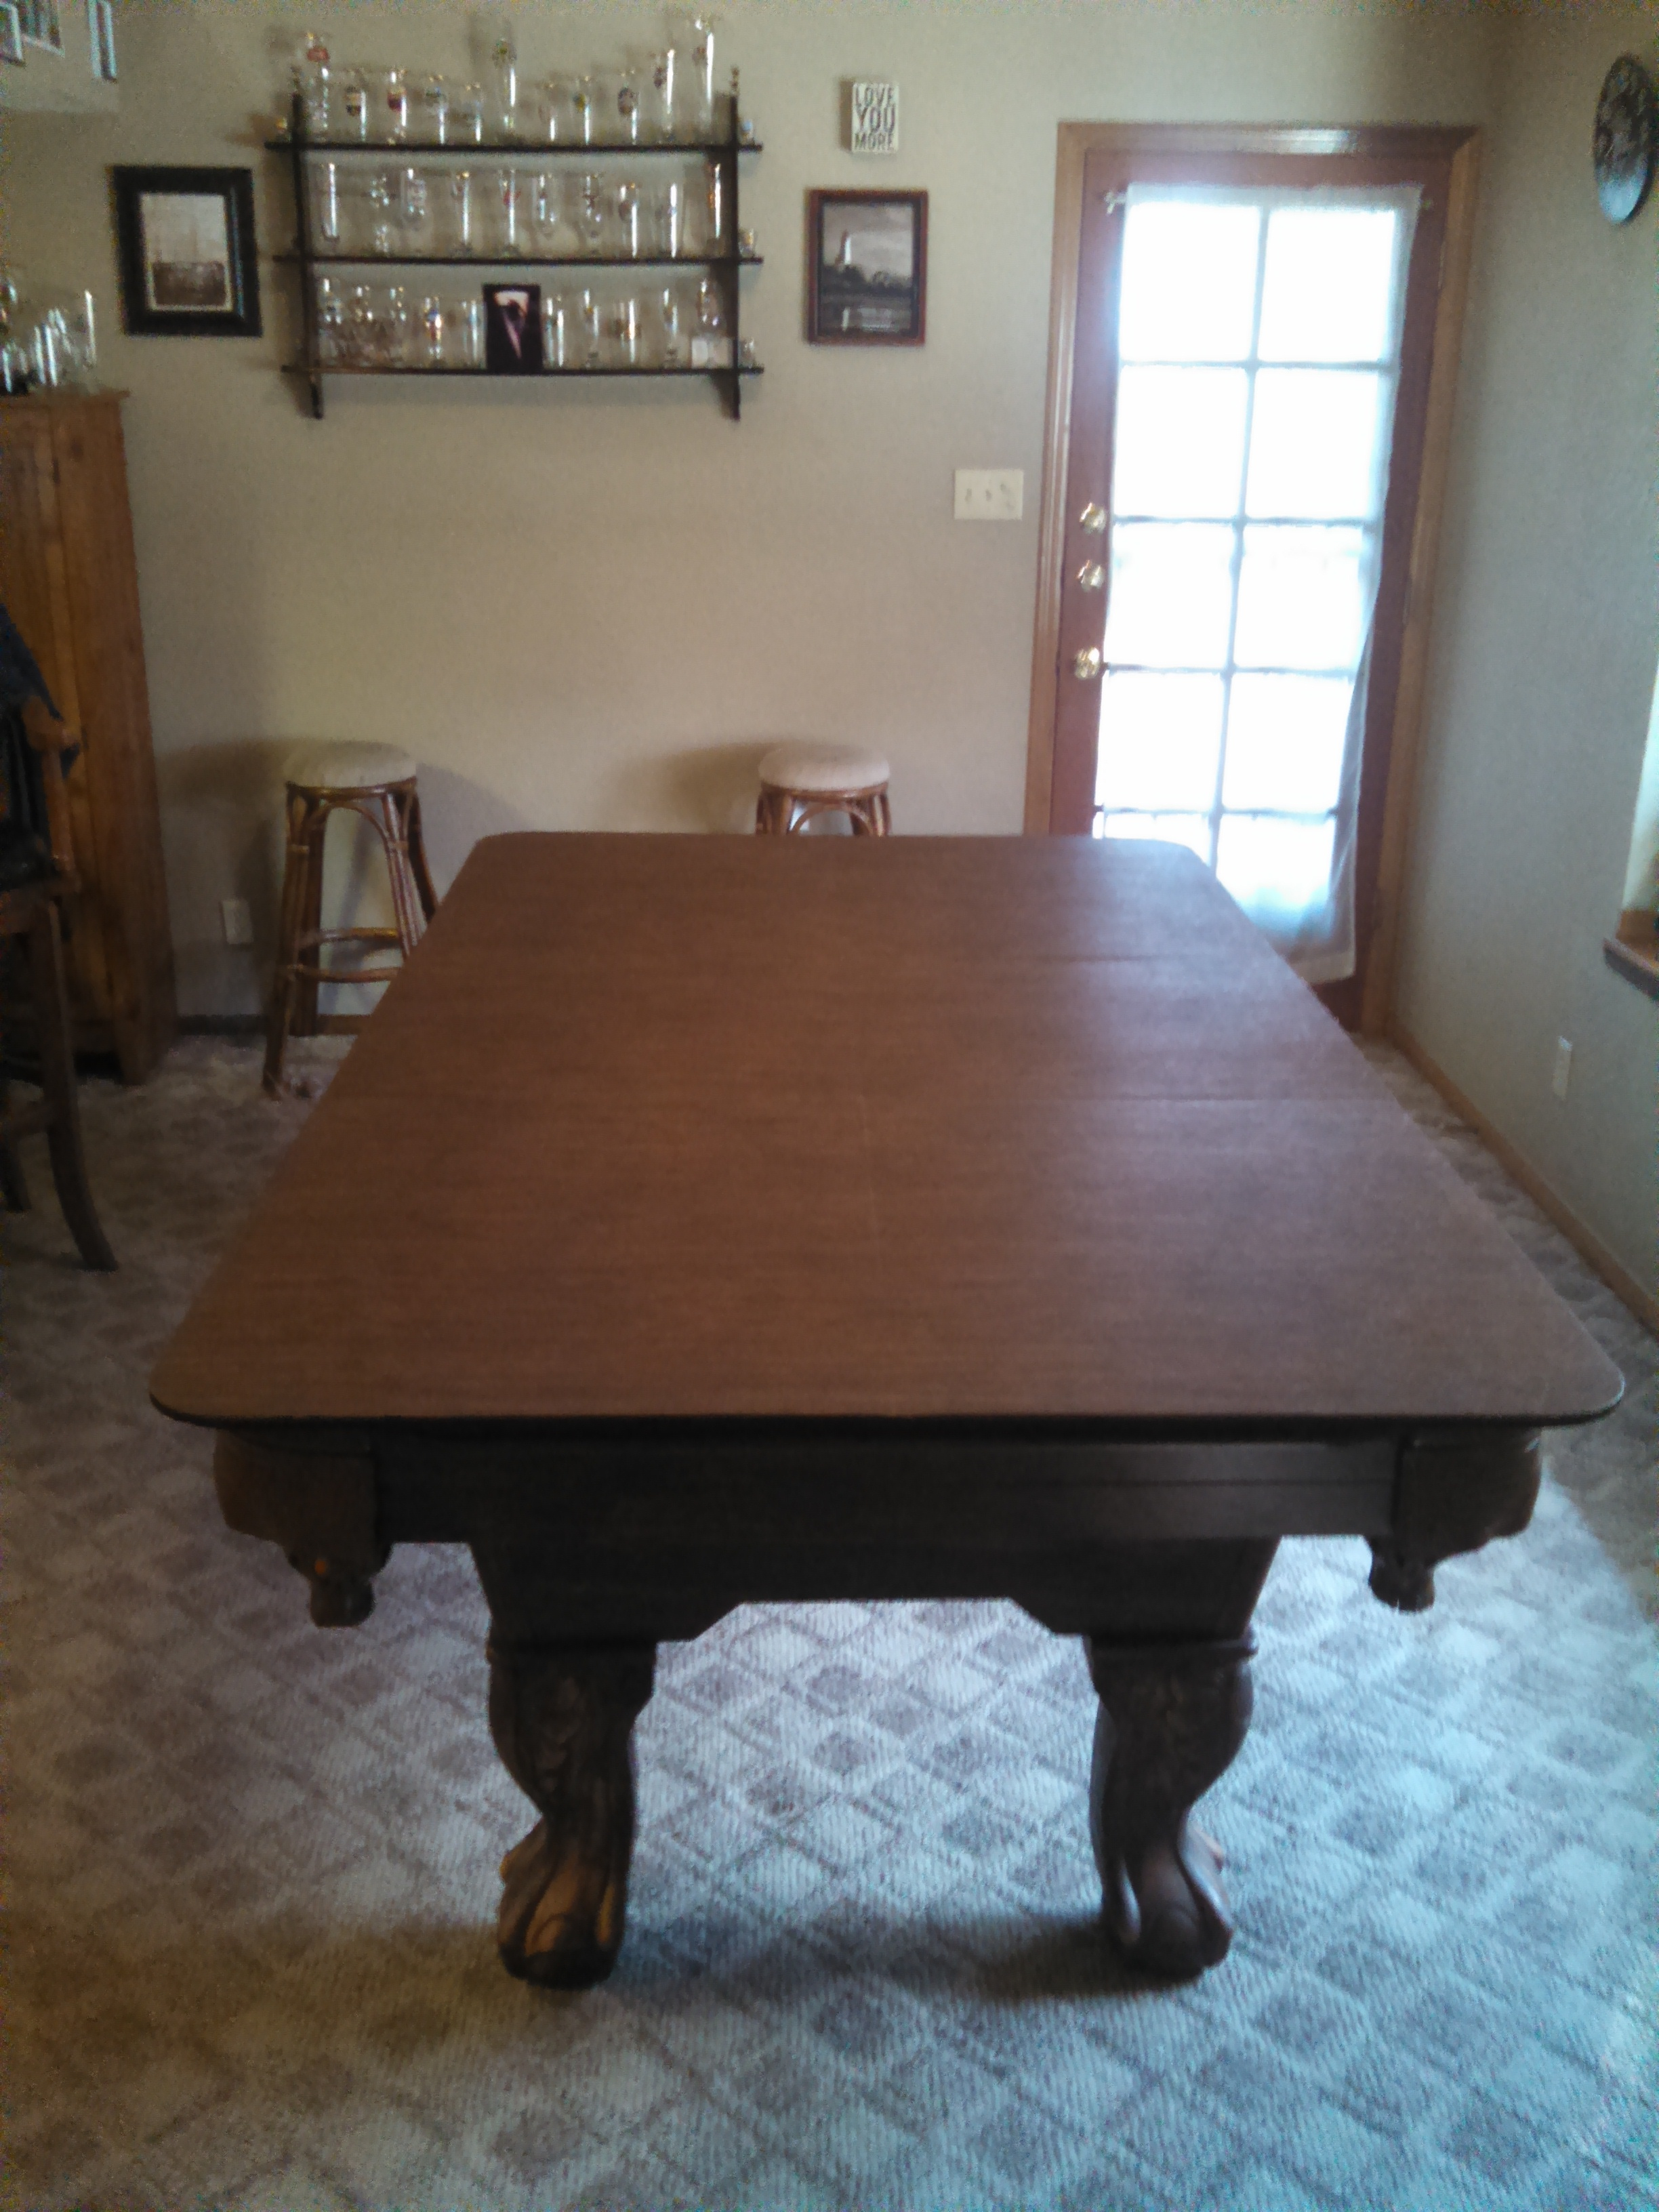 custom dining room table pads  audidatlevante com custom dining room table pads nj custom dining room table pads nj